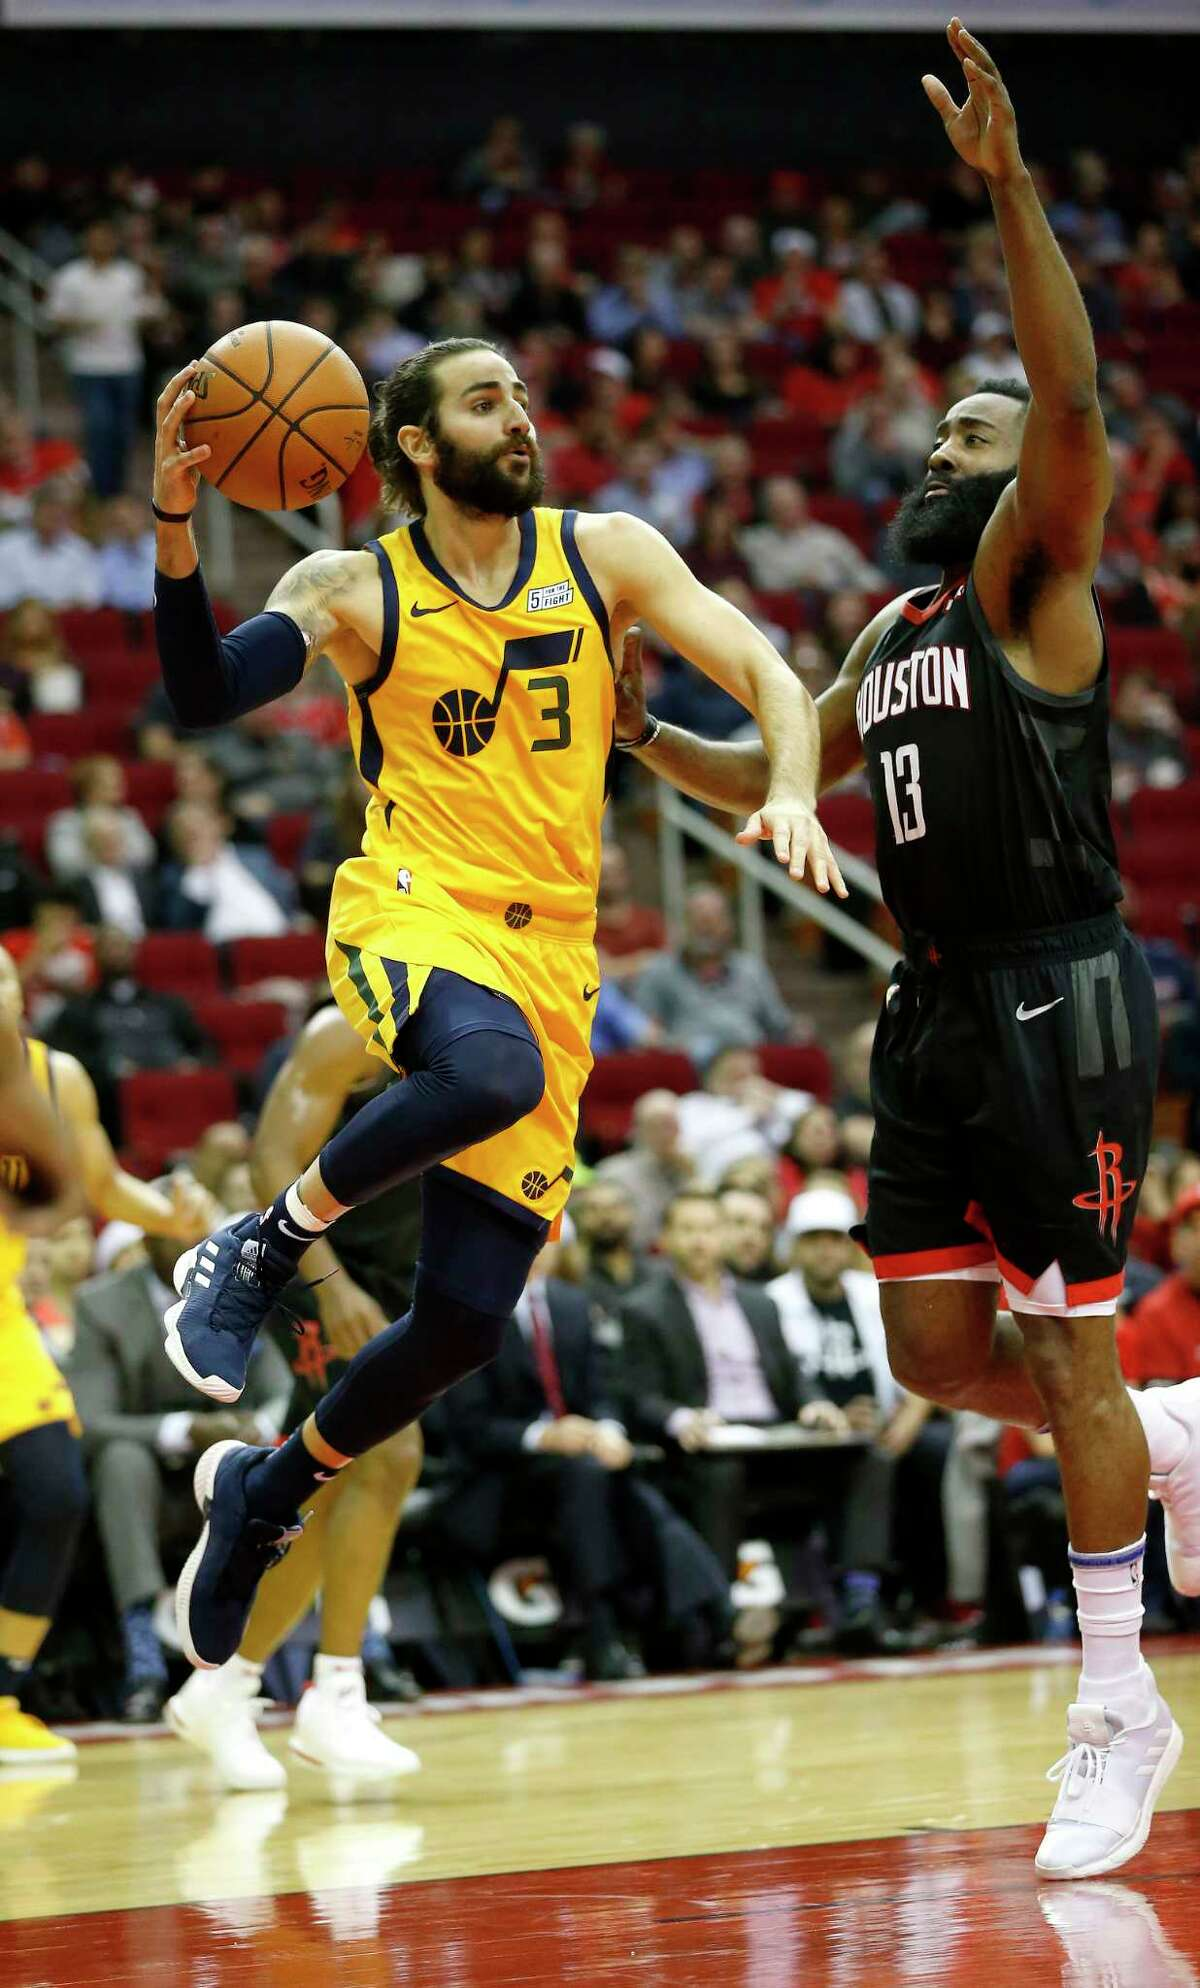 Utah Jazz guard Ricky Rubio (3) looks to pass the ball over Houston Rockets guard James Harden (13) during the first half of an NBA game at Toyota Center, Monday, Dec. 17, 2018, in Houston.